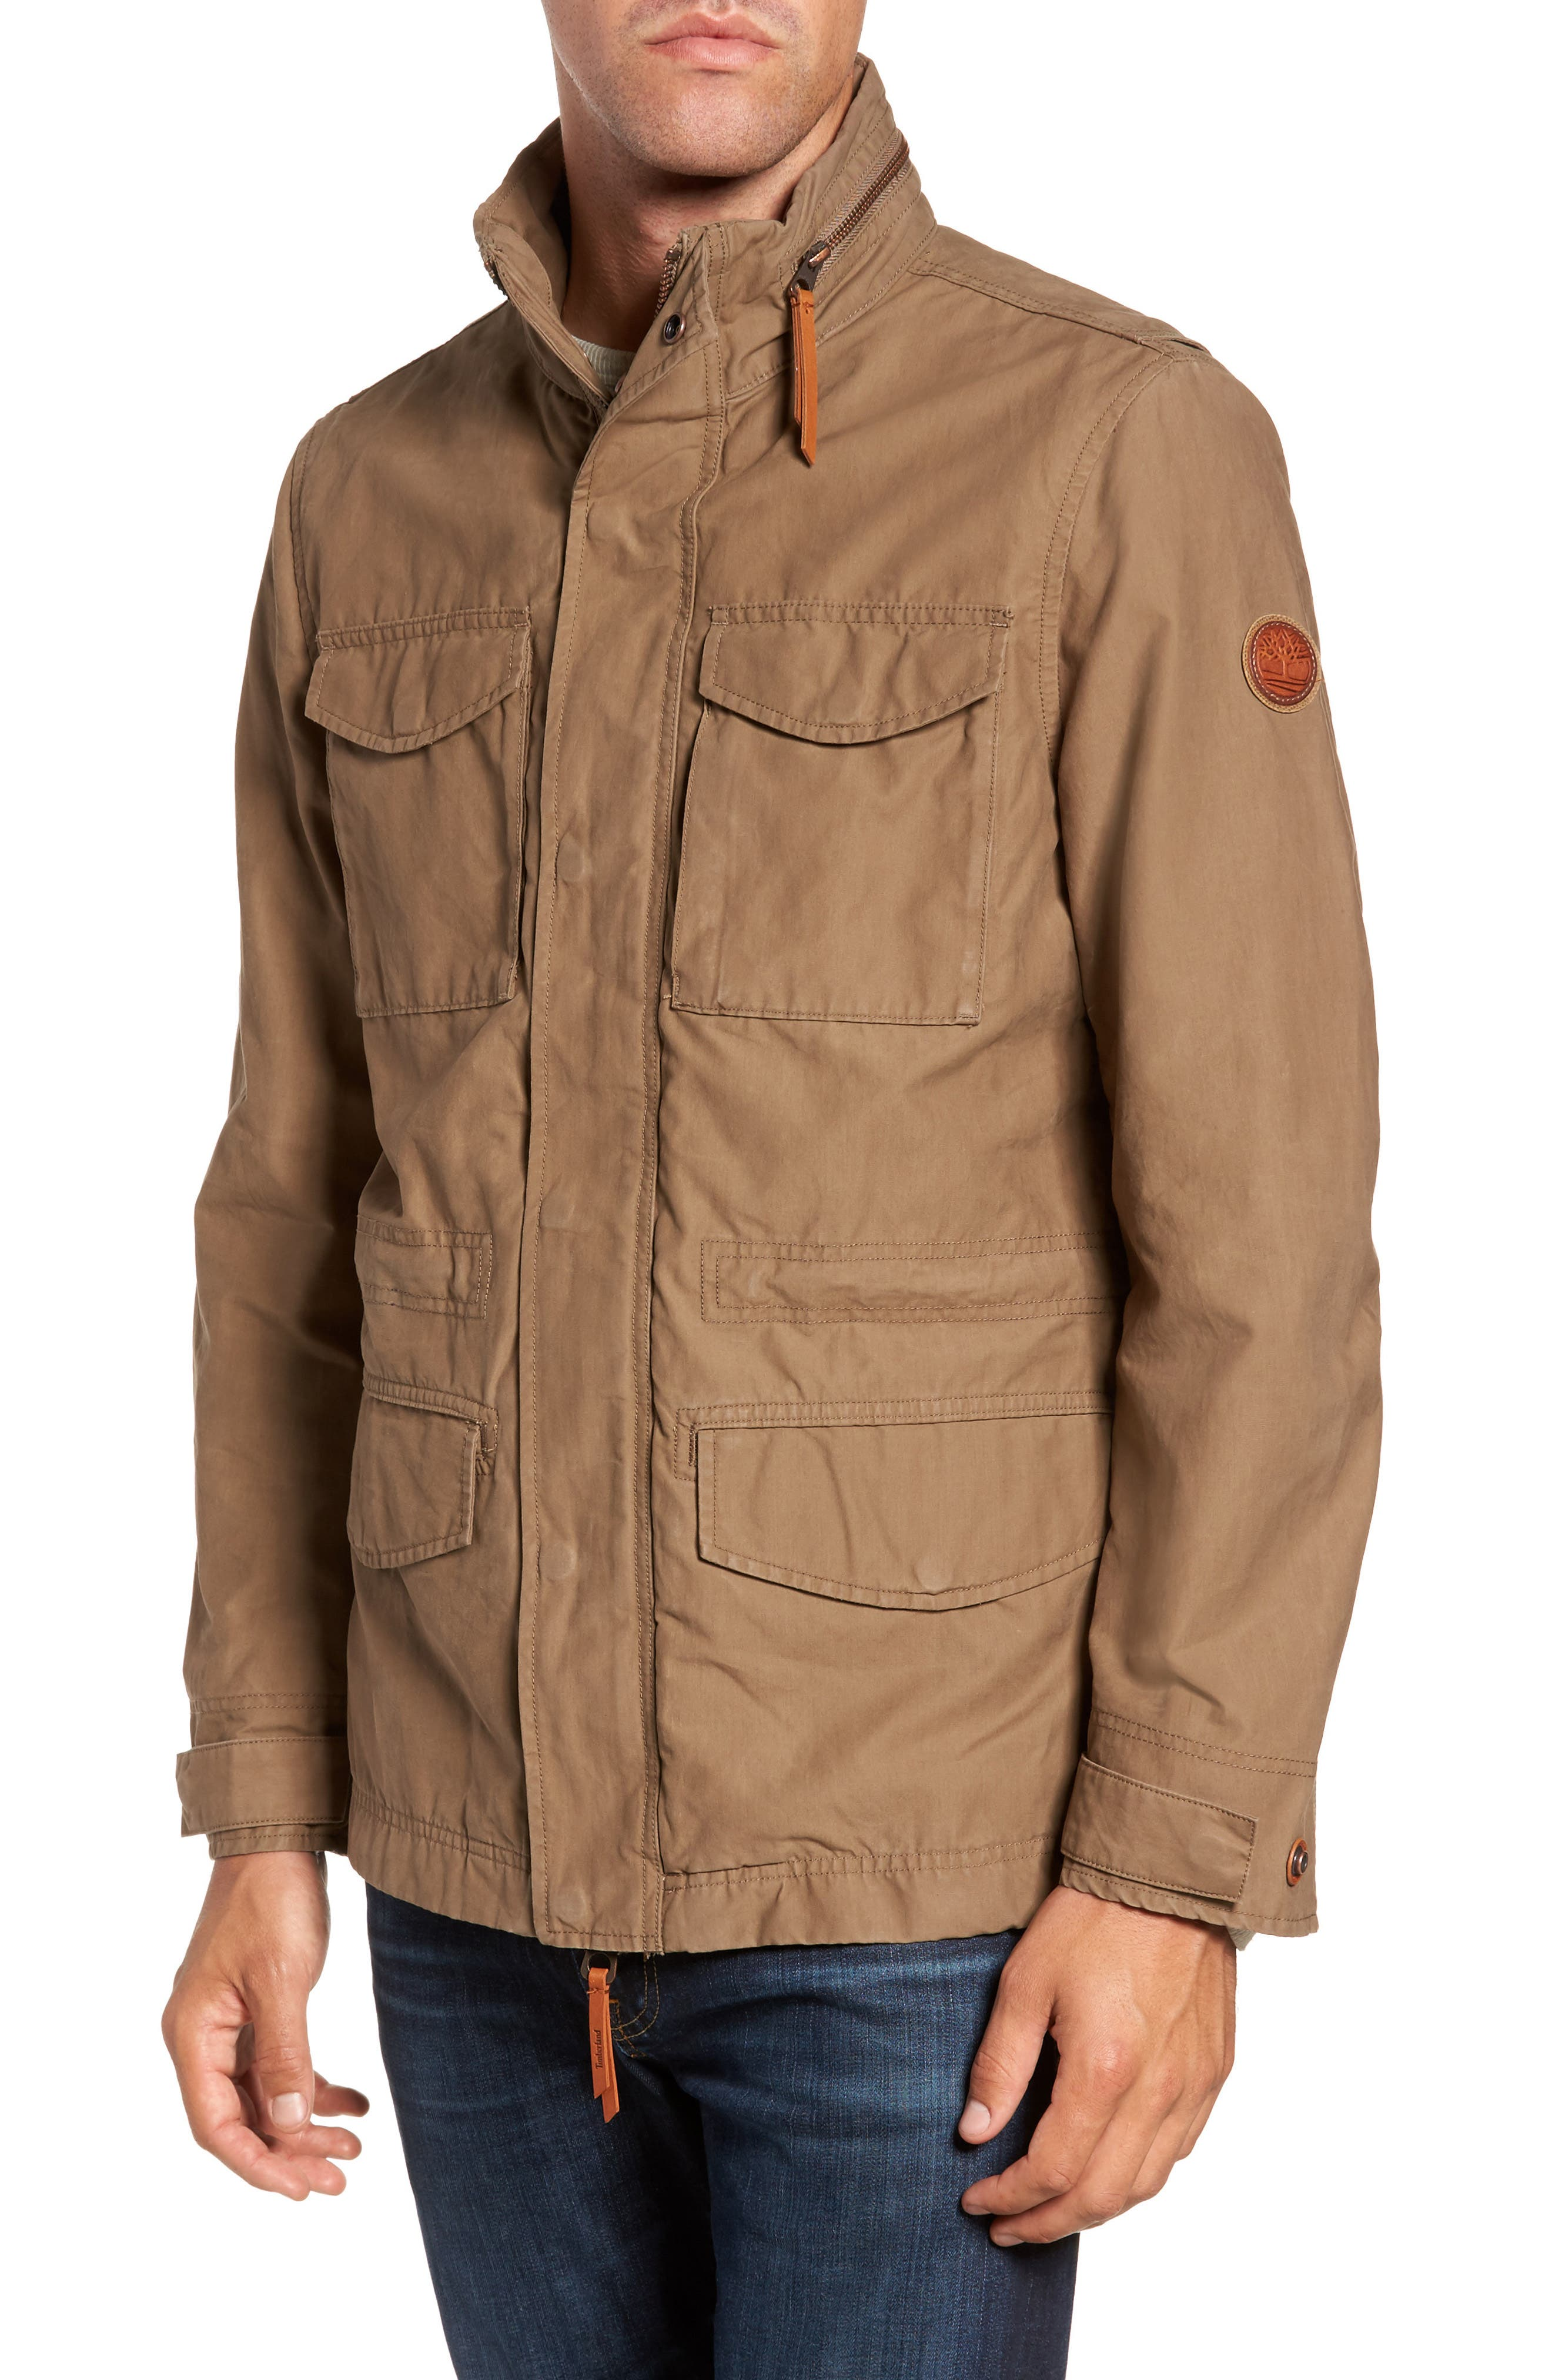 Timberland Mt. Davis M65 Waxed Canvas Jacket